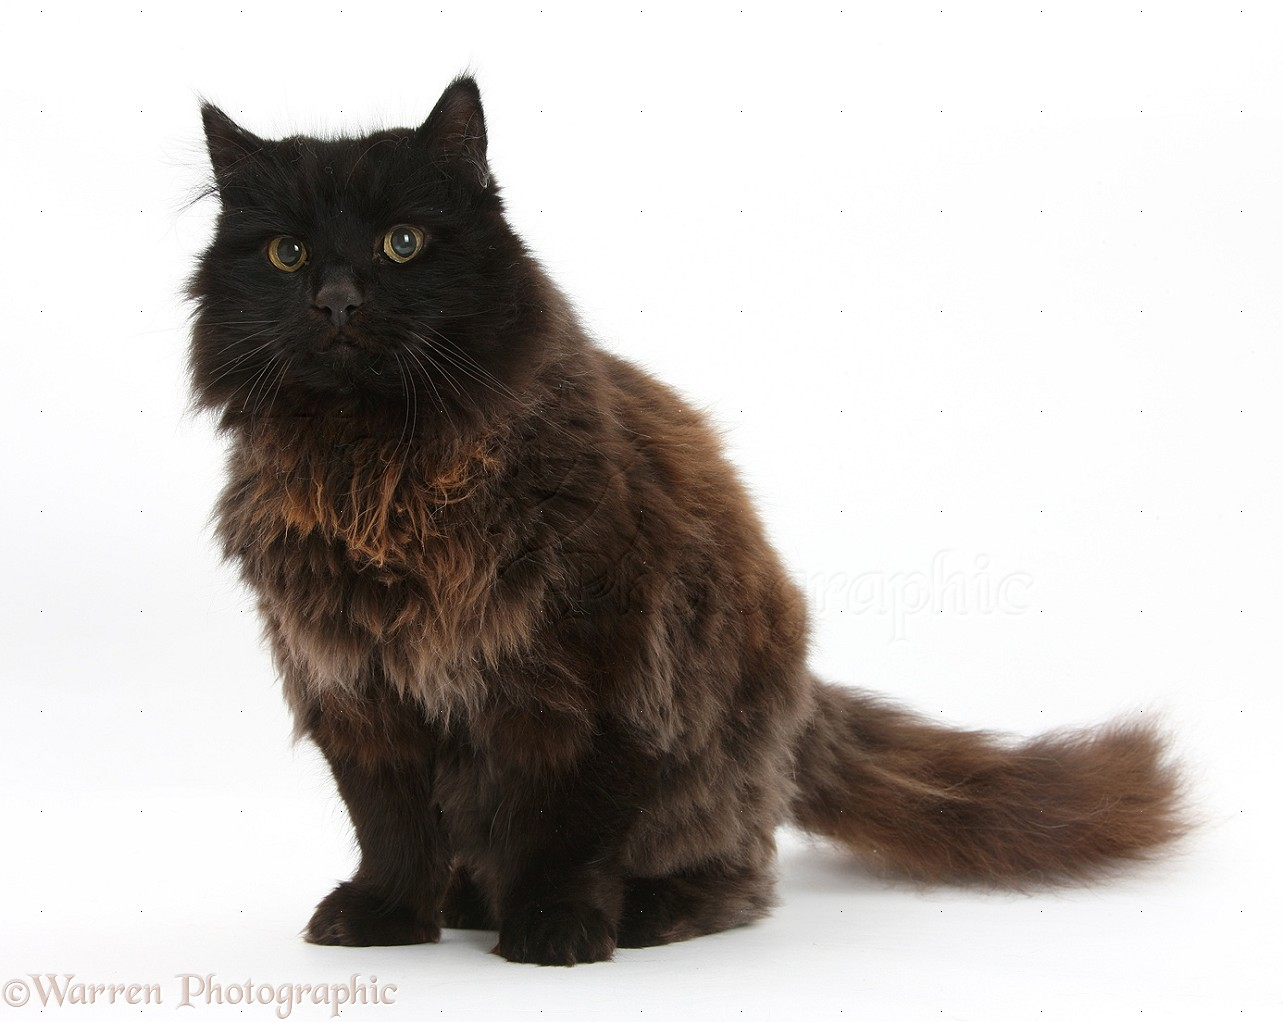 YORK CHOCOLATE CAT BREED